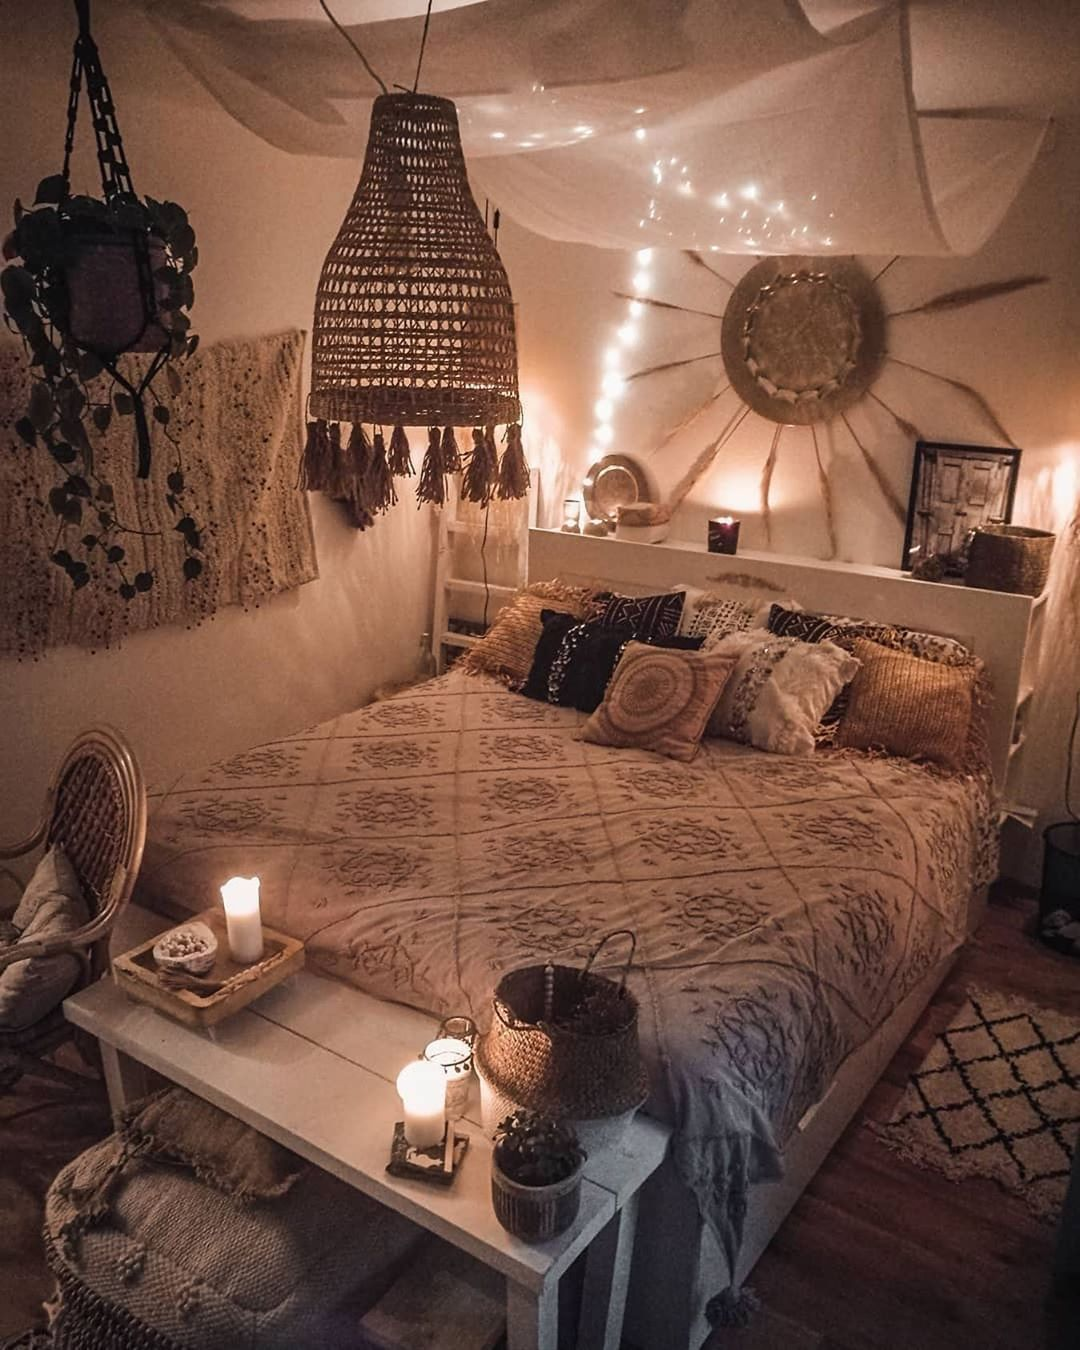 60+ Bohemian Minimalist with Urban Outfiters Bedroom Ideas